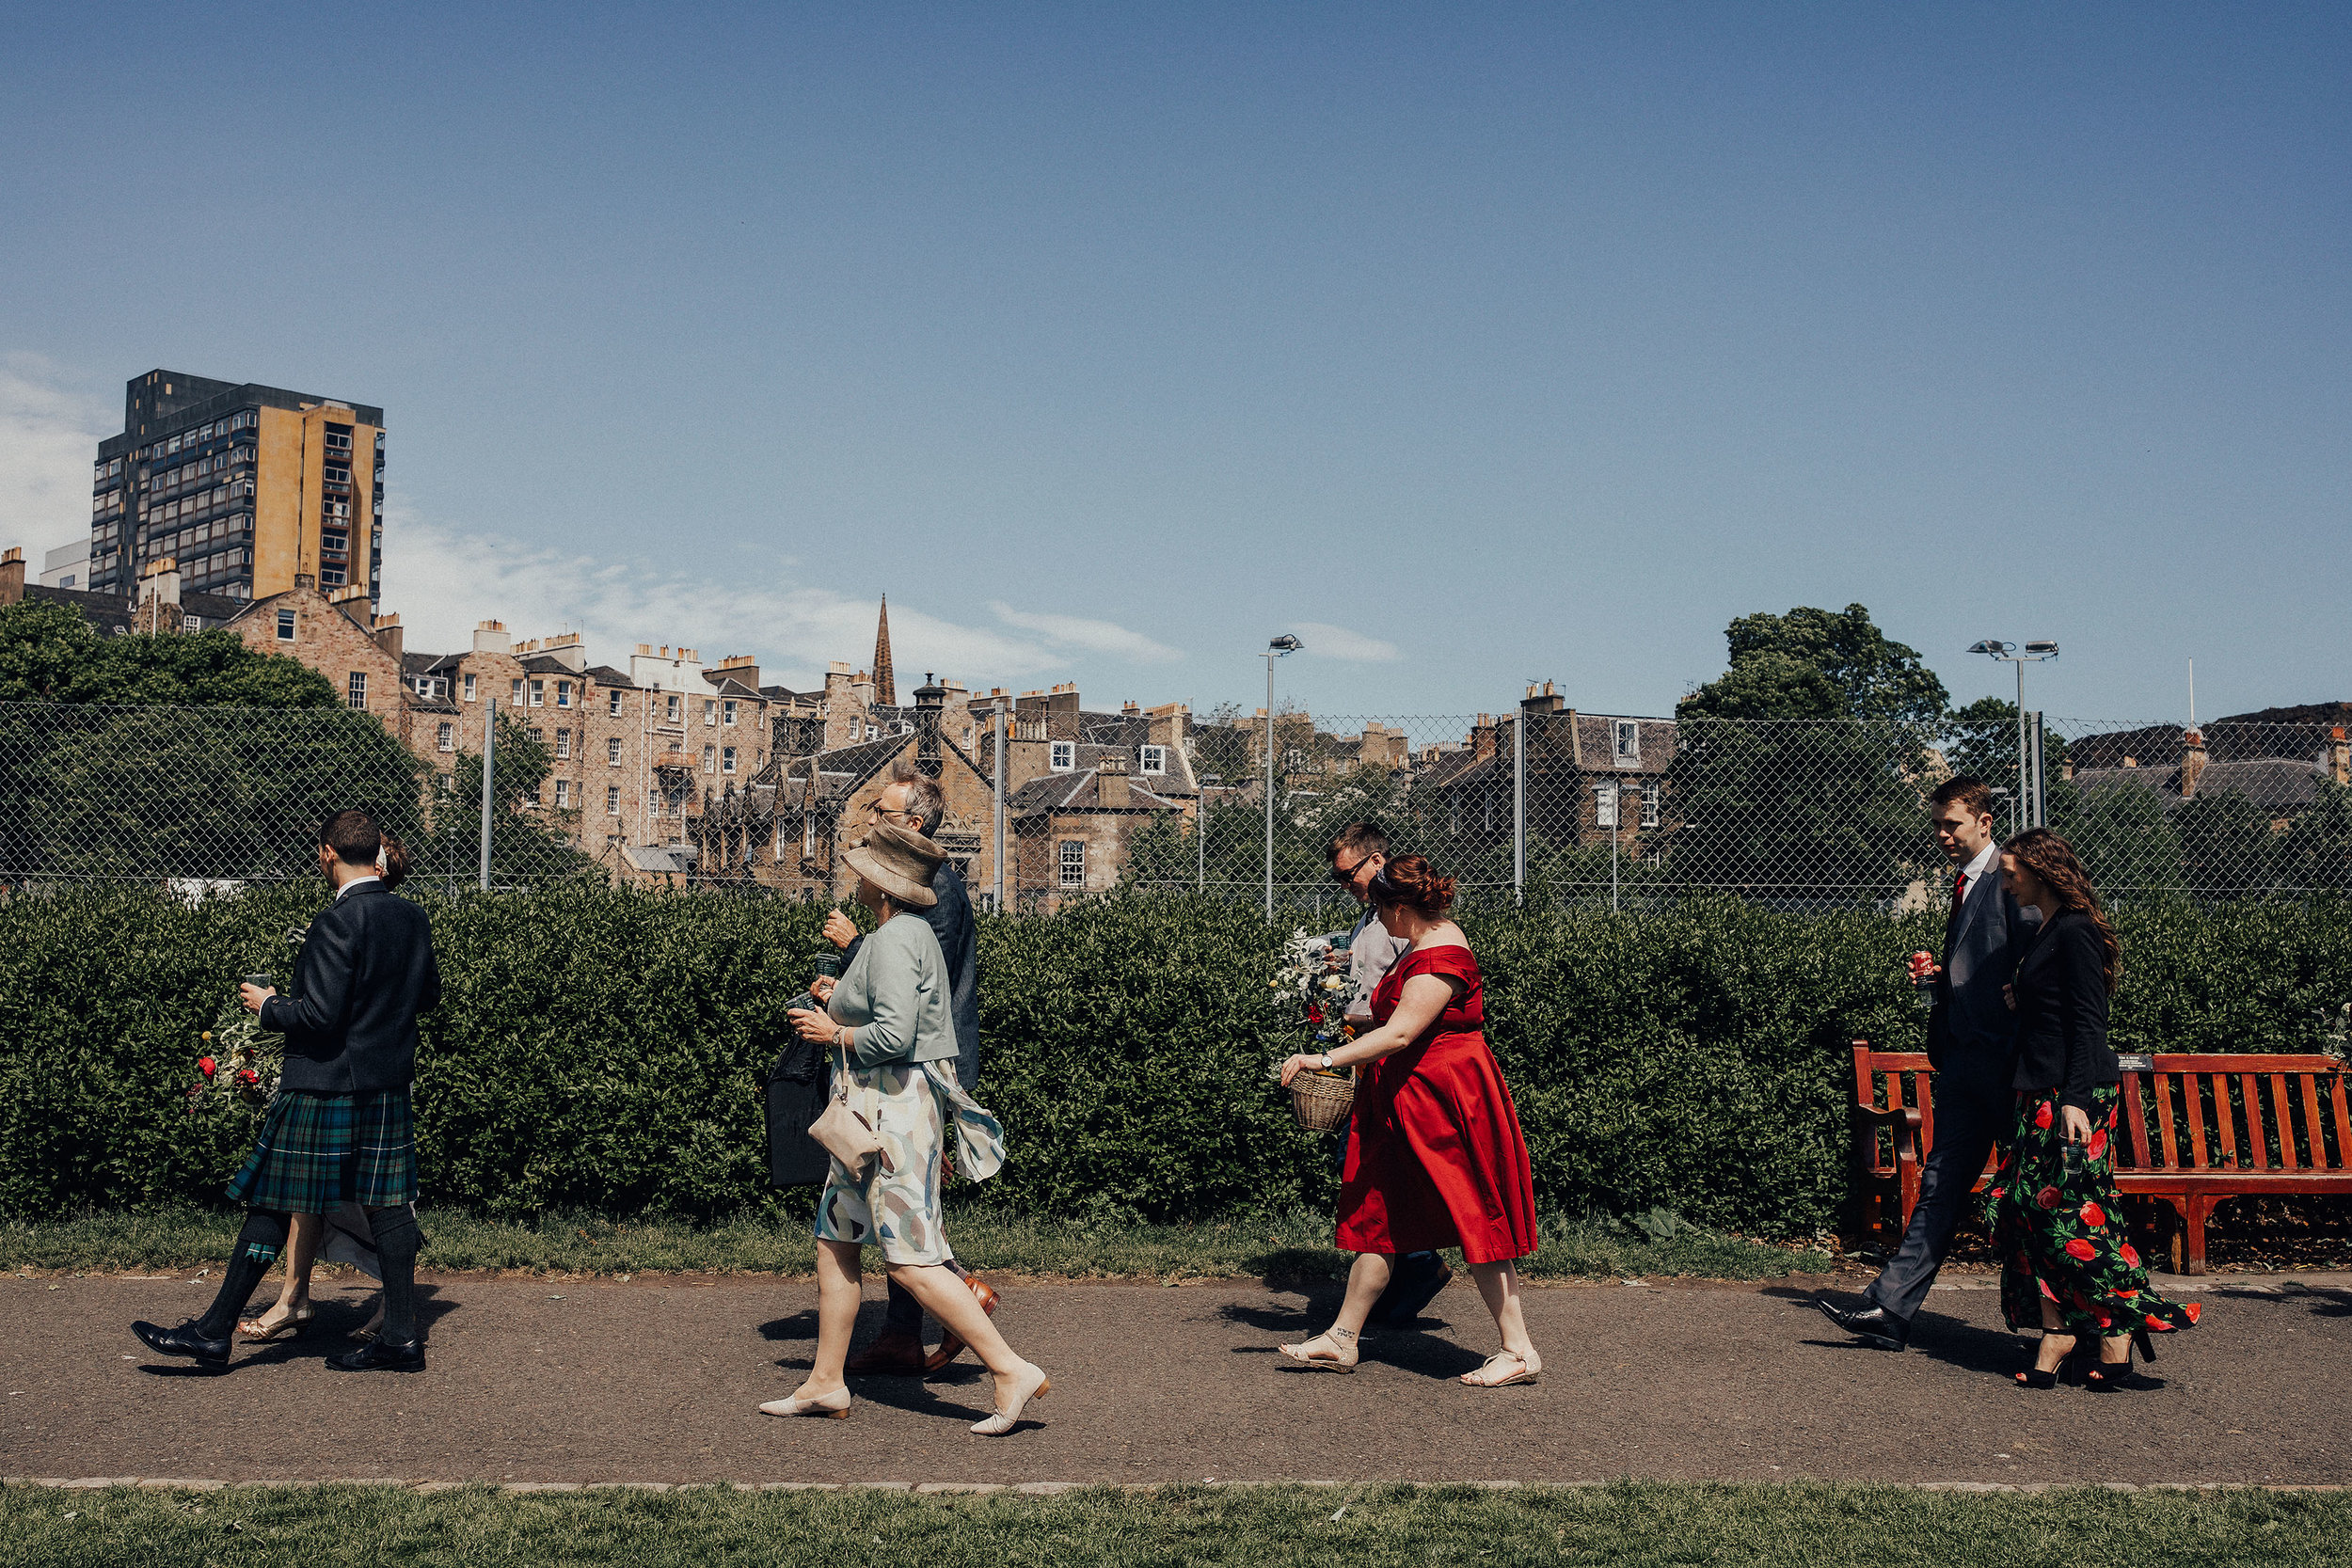 TIMBERYARD_EDINBURGH_WEDDING_PJ_PHILLIPS_PHOTOGRAPHY_112.jpg